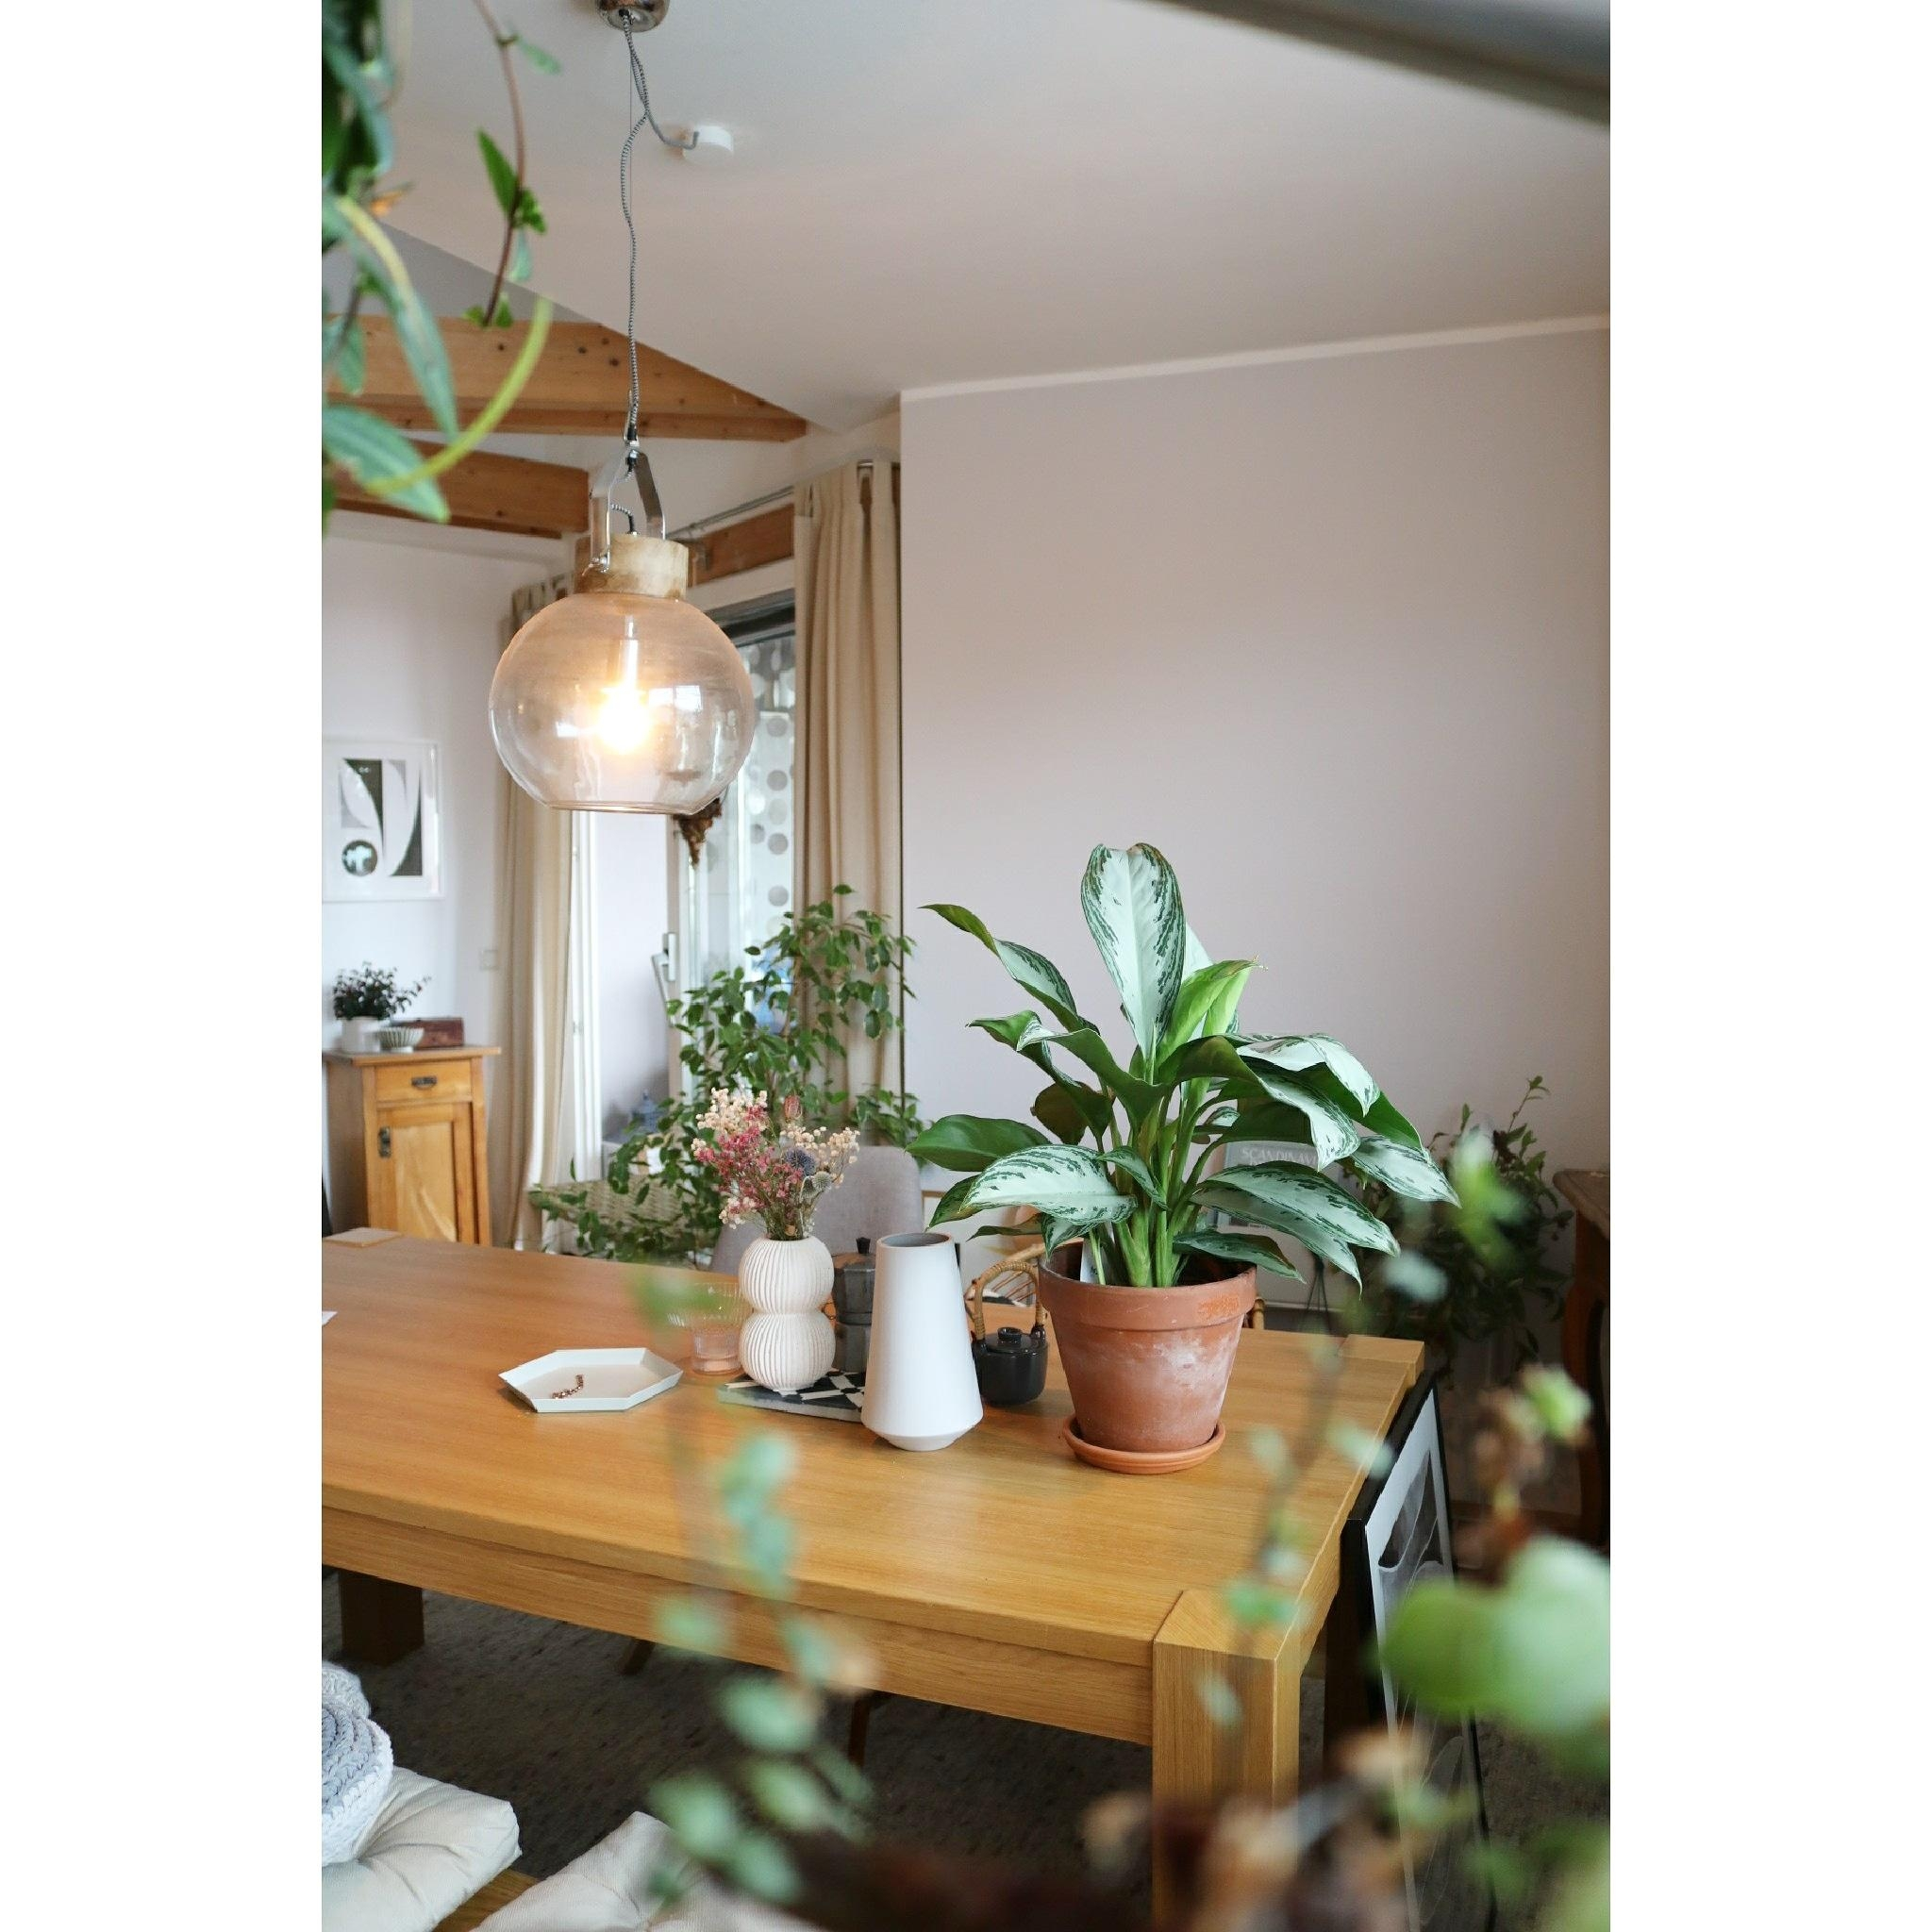 #urbanjungle #greenliving #green #interior #myhome #plants #diningroom #onthetable #design #hygge